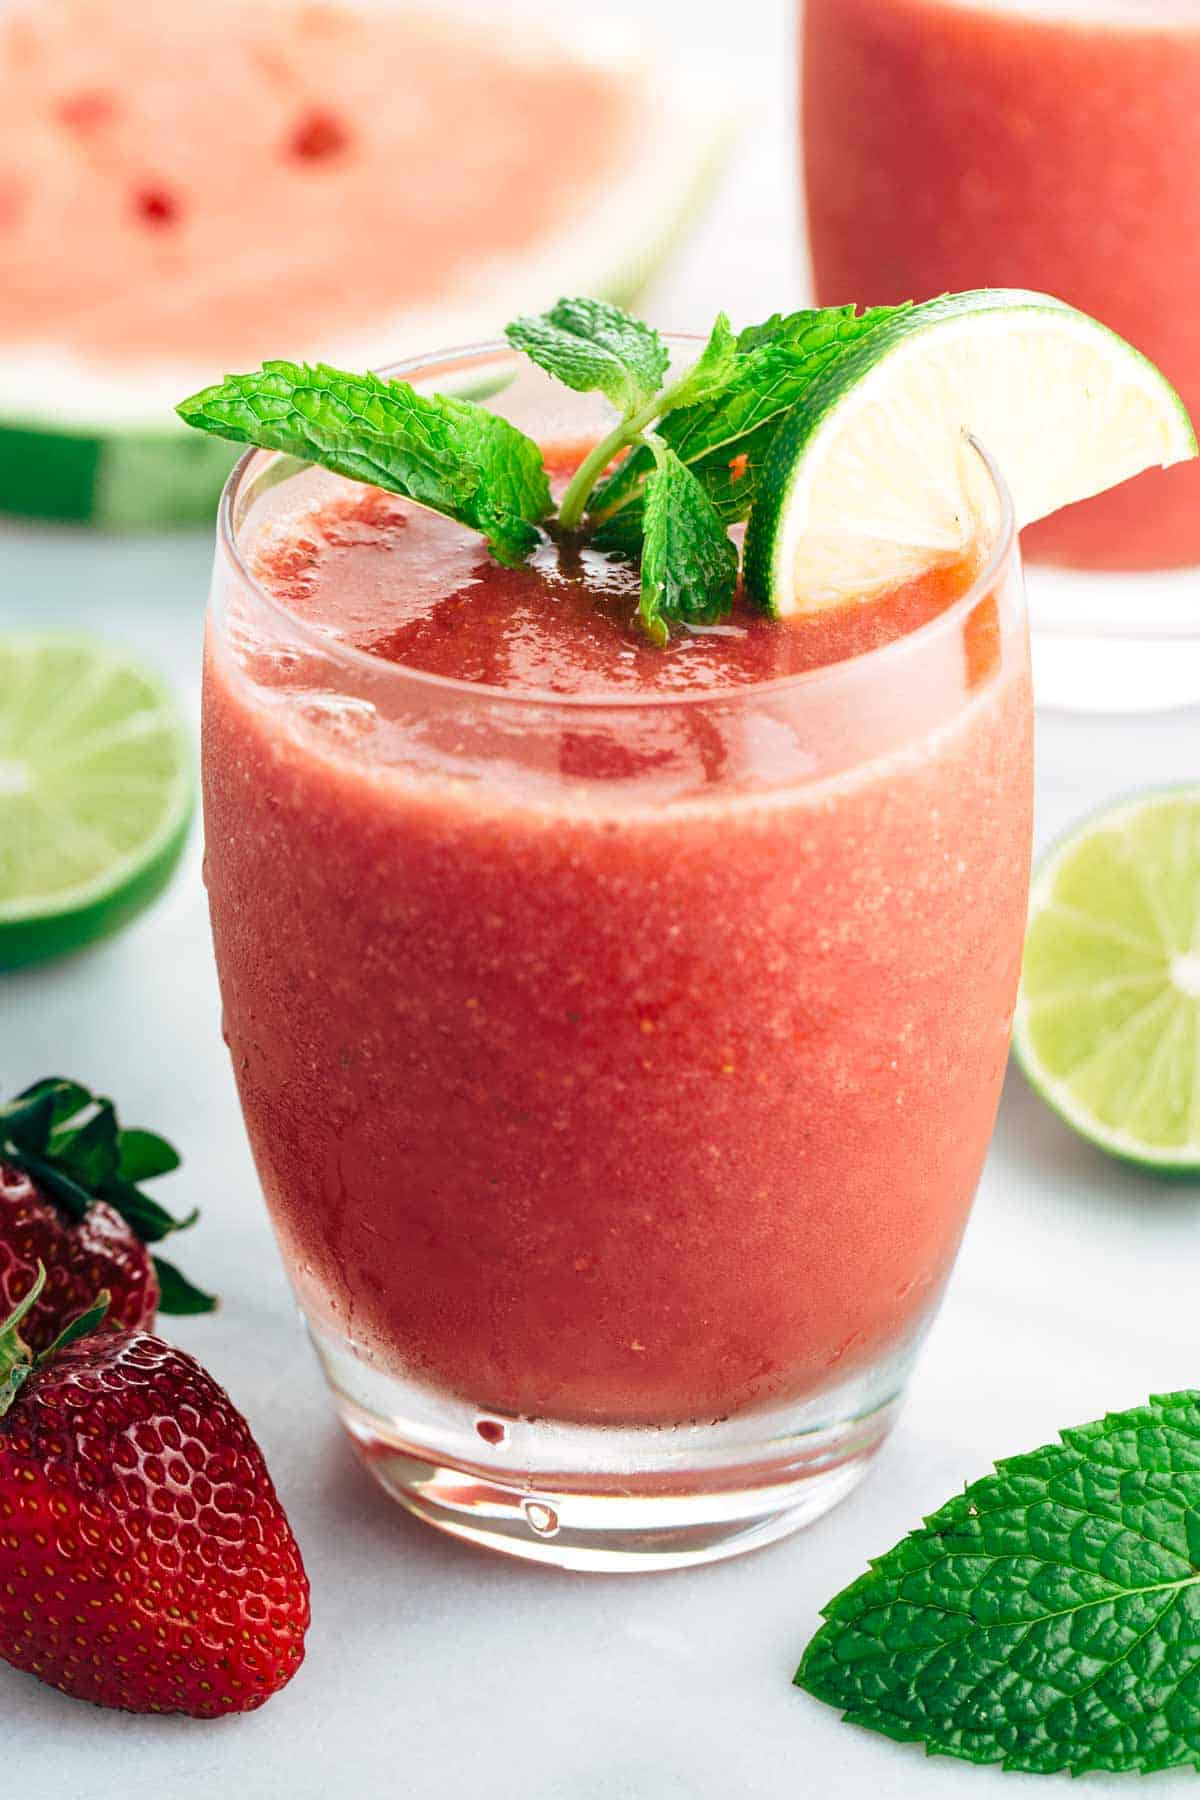 Glass of strawberry watermelon smoothie with mint and lemon